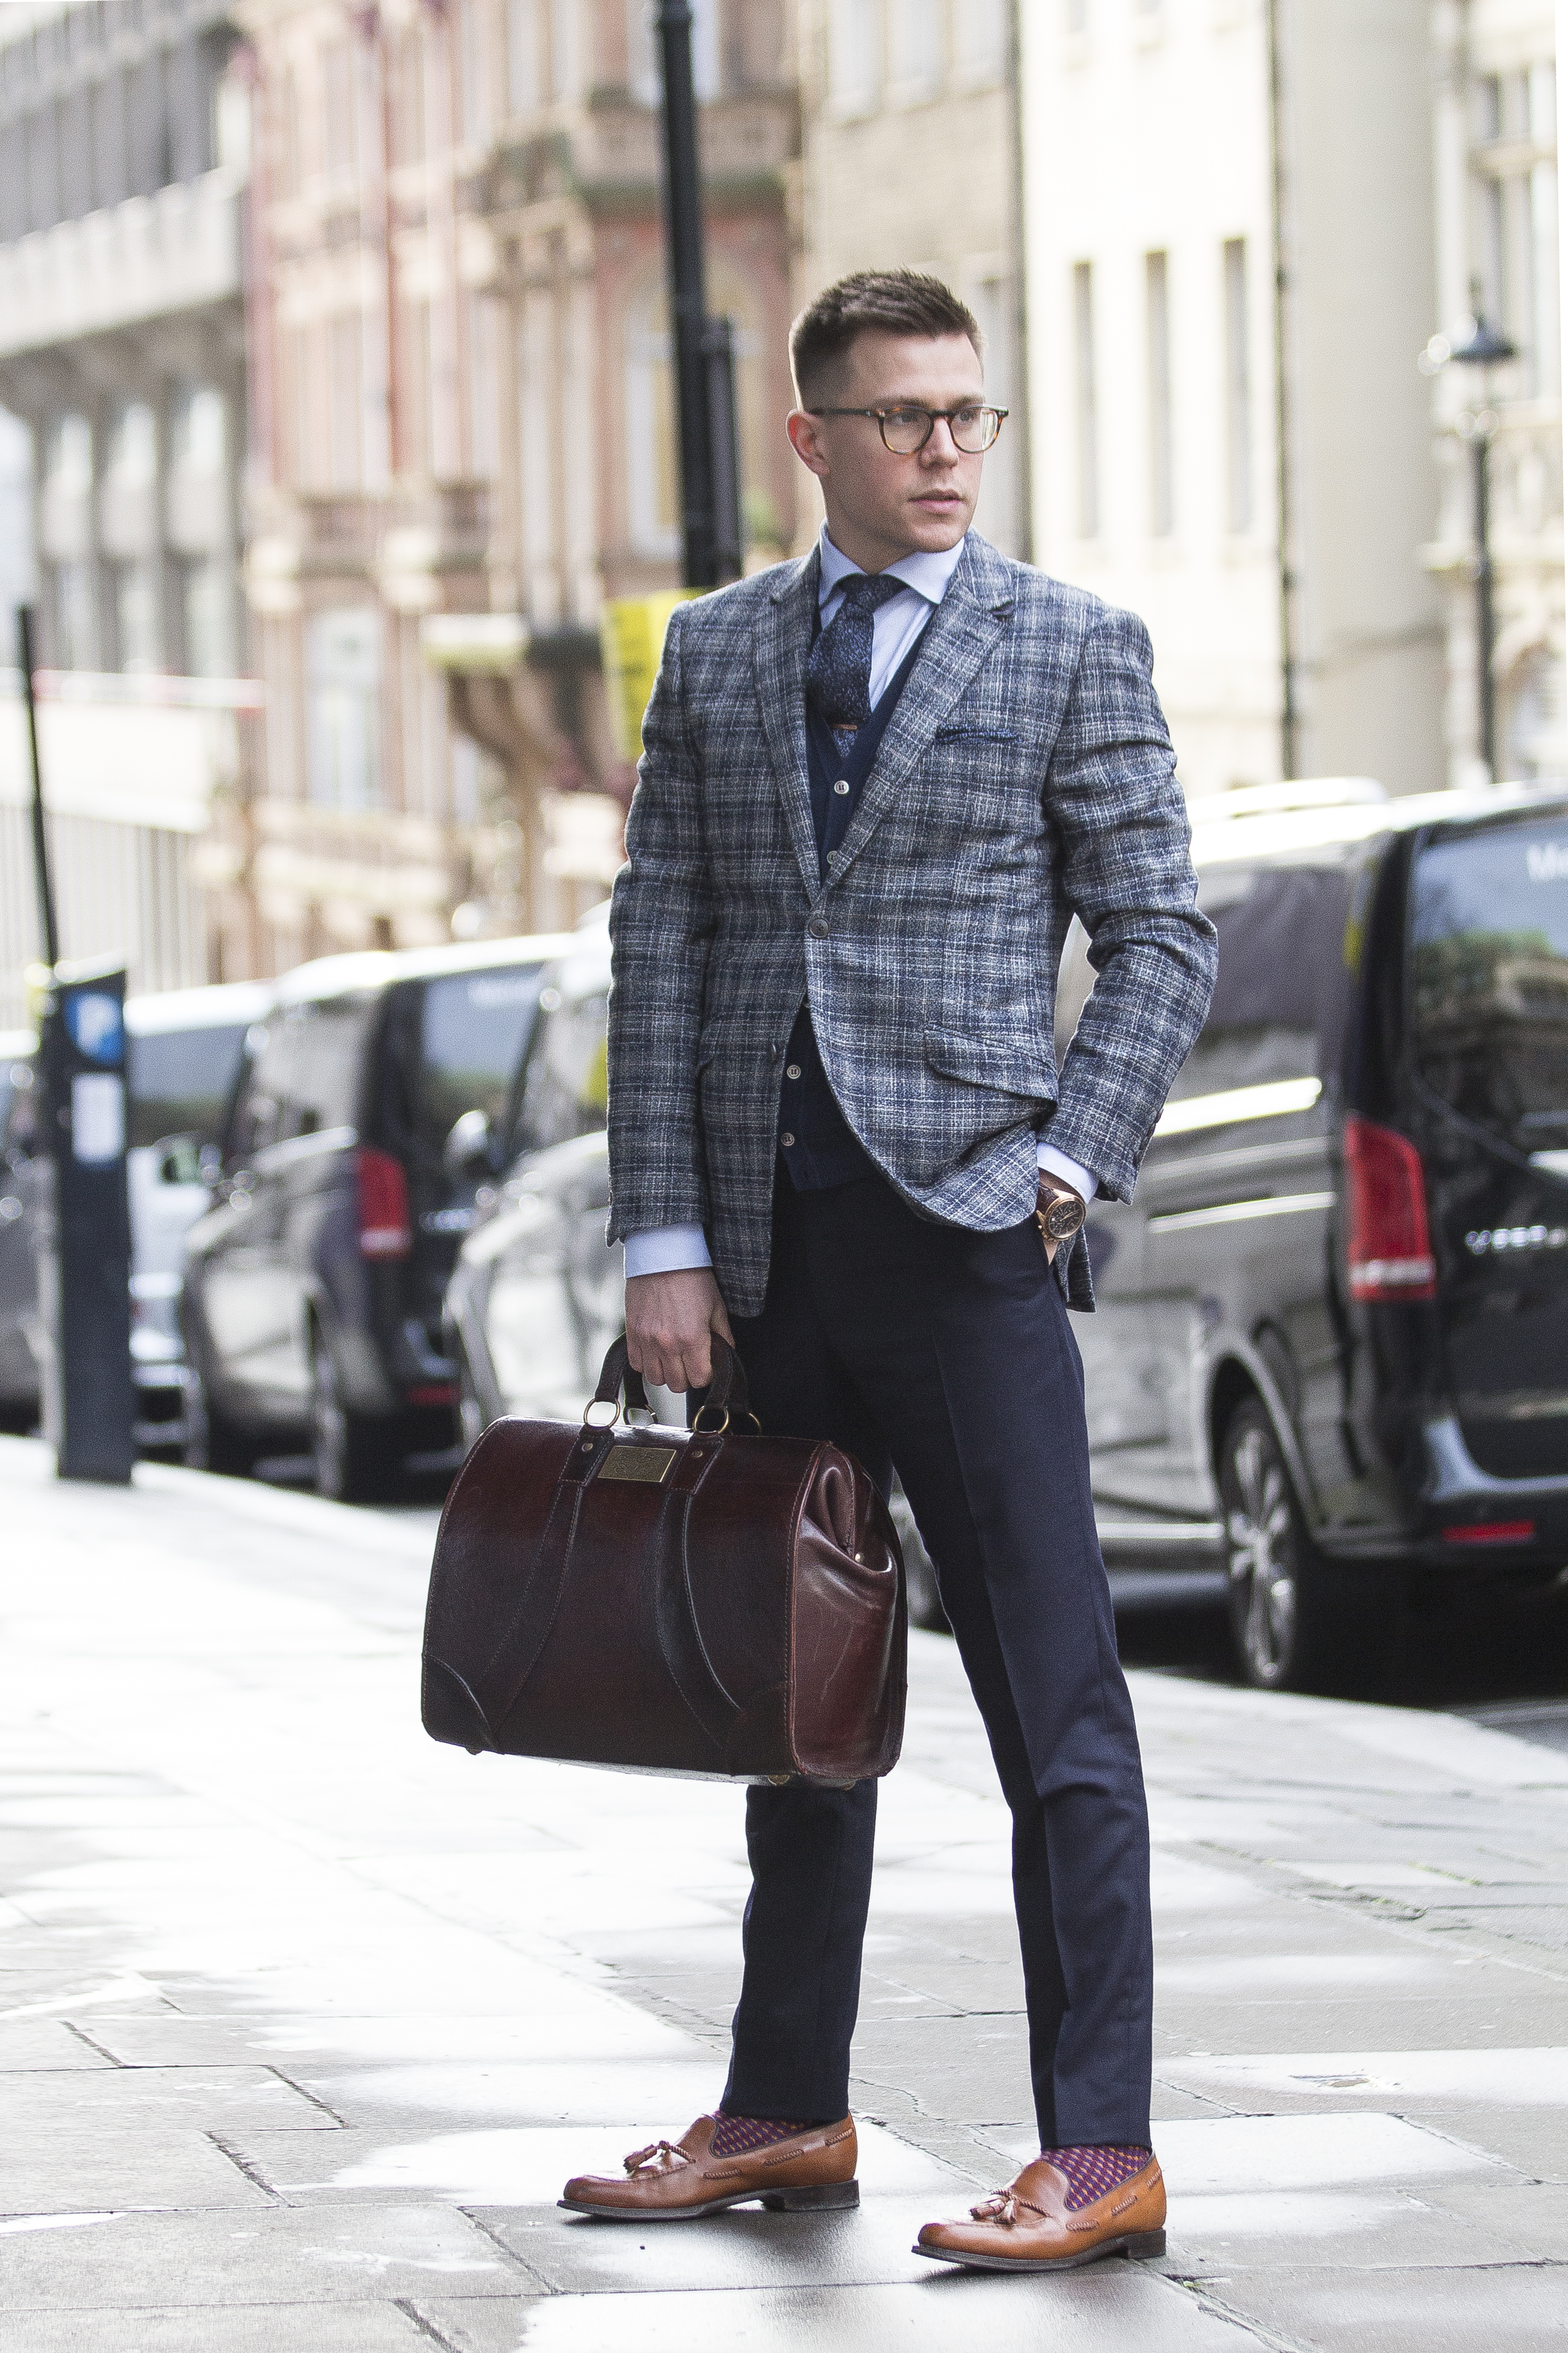 Adam London Streetstyle